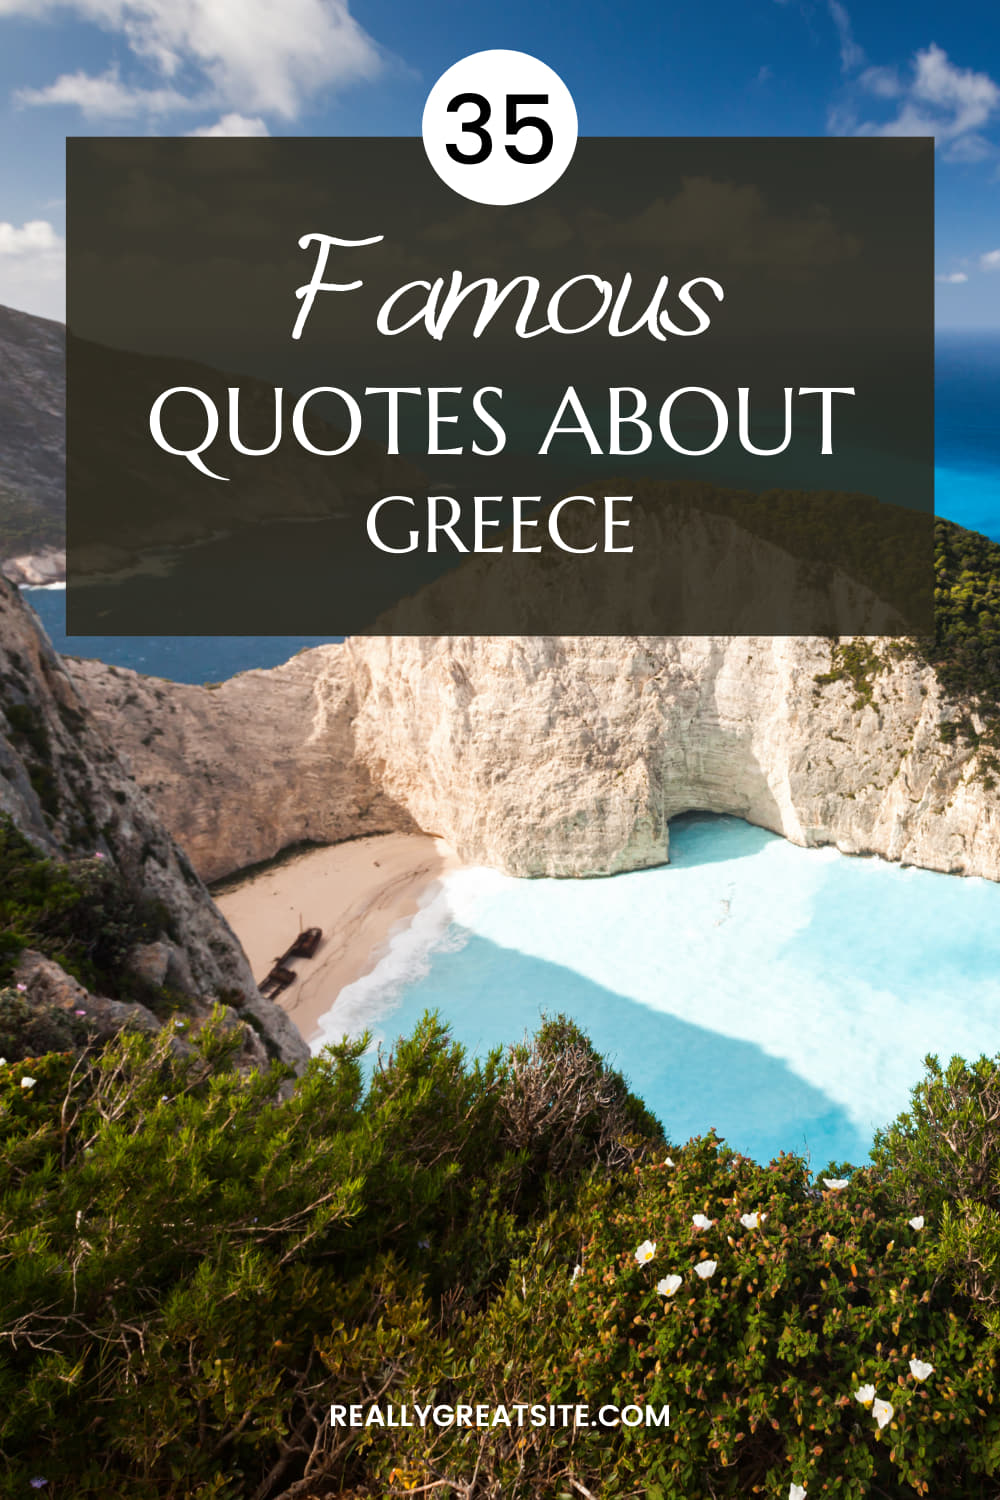 35 Beautiful Greece Quotes - Famous and Inspiring Quotes on Greece! Greece Travel Quotes, Greece Travel, Greece Travel Itinerary, Travel to Greece, Greece Travel Islands, Quotes aboout Greece.